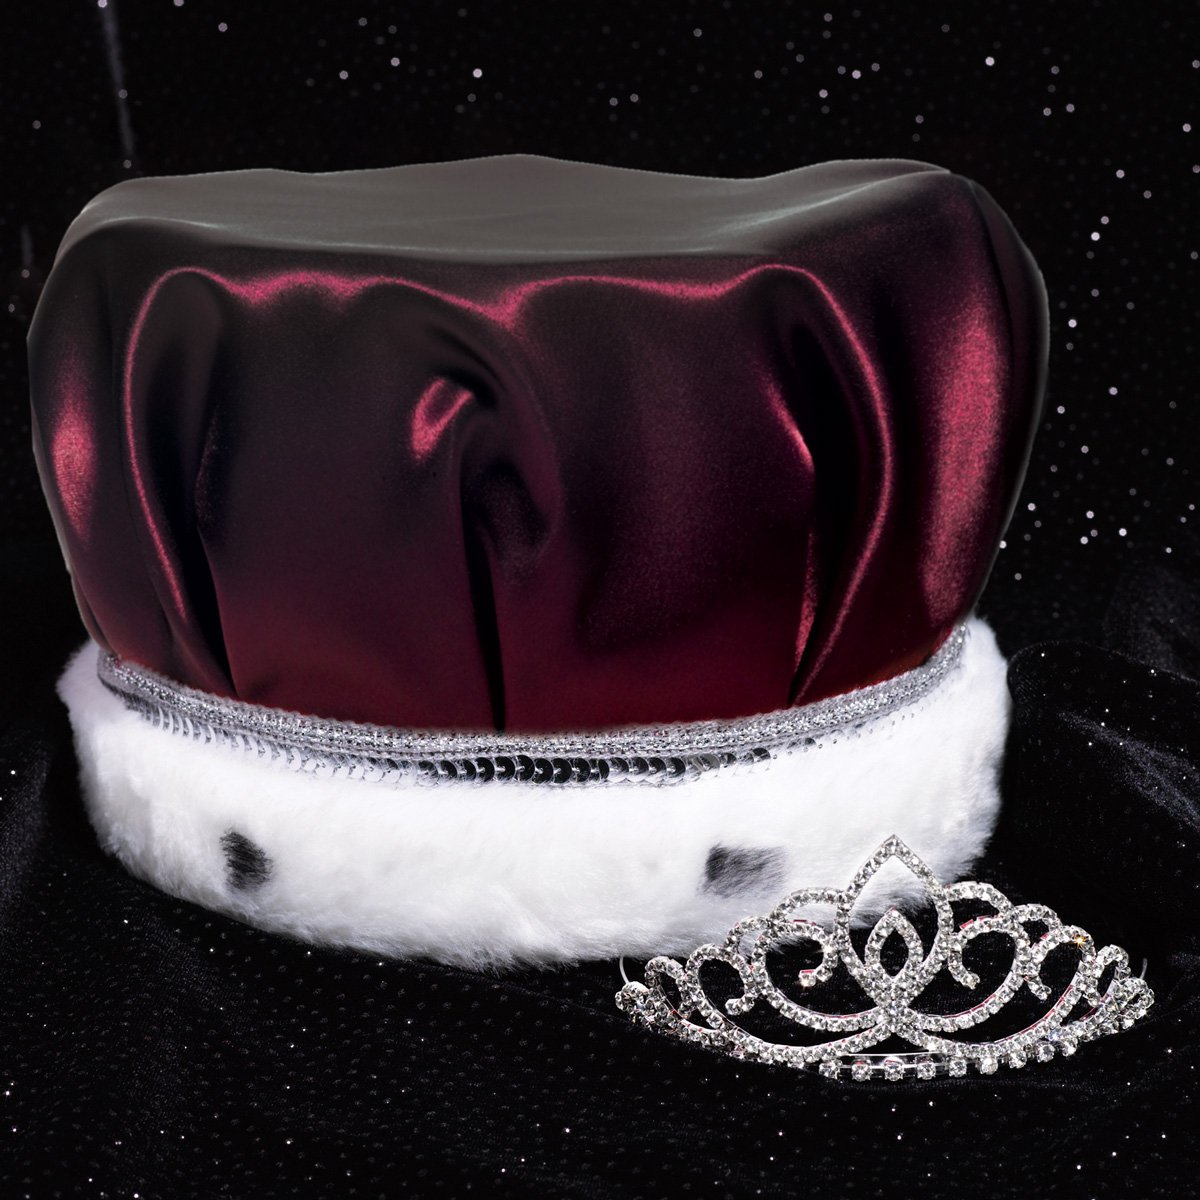 Coronation Set, 2 1/4 inch High Sharona Tiara and Burgundy Satin Crown with Silver Sequins, White Fur